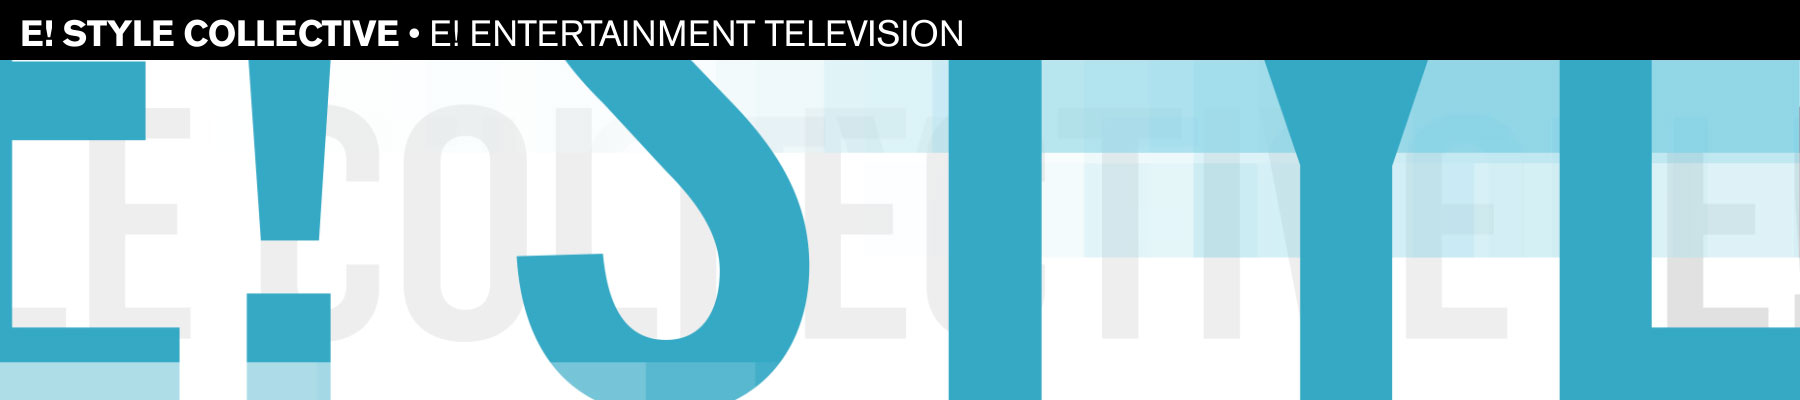 E! Style Collective • E! Entertainment Television